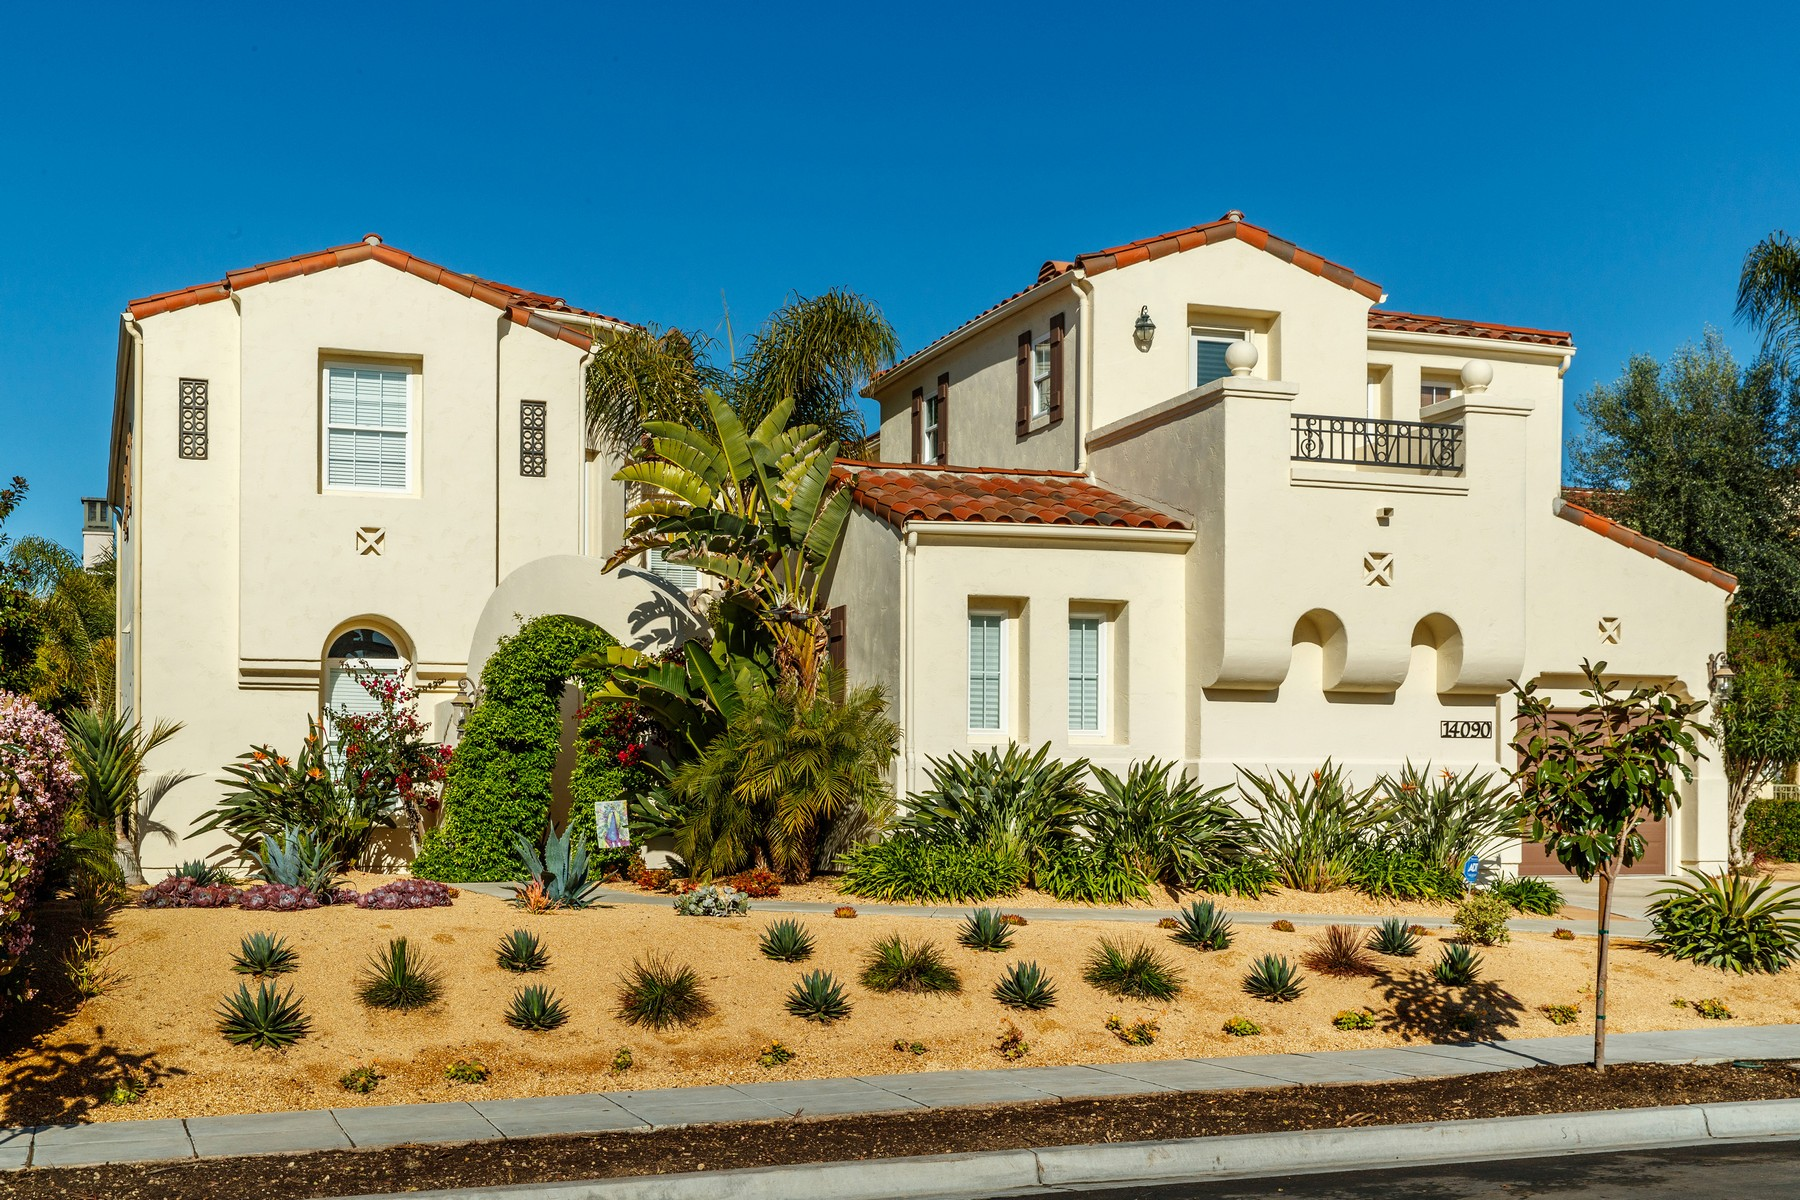 Casa Unifamiliar por un Venta en Collins Ranch 14090 Collins Ranch Place San Diego, California, 92130 Estados Unidos